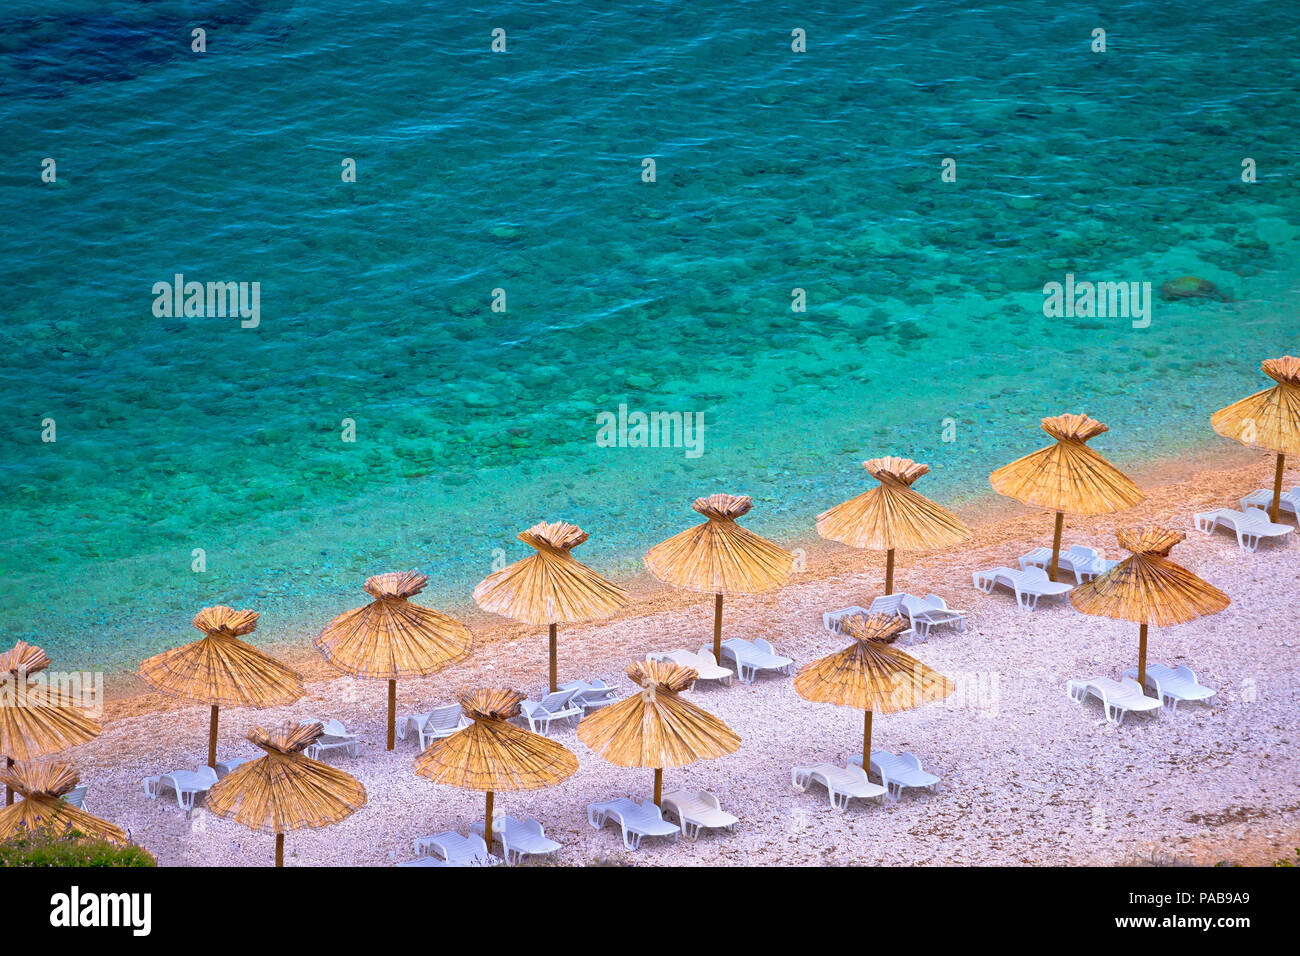 Island of Krk beach at Stara Baska aerial view, archipelago of Kvrner, Croatia - Stock Image